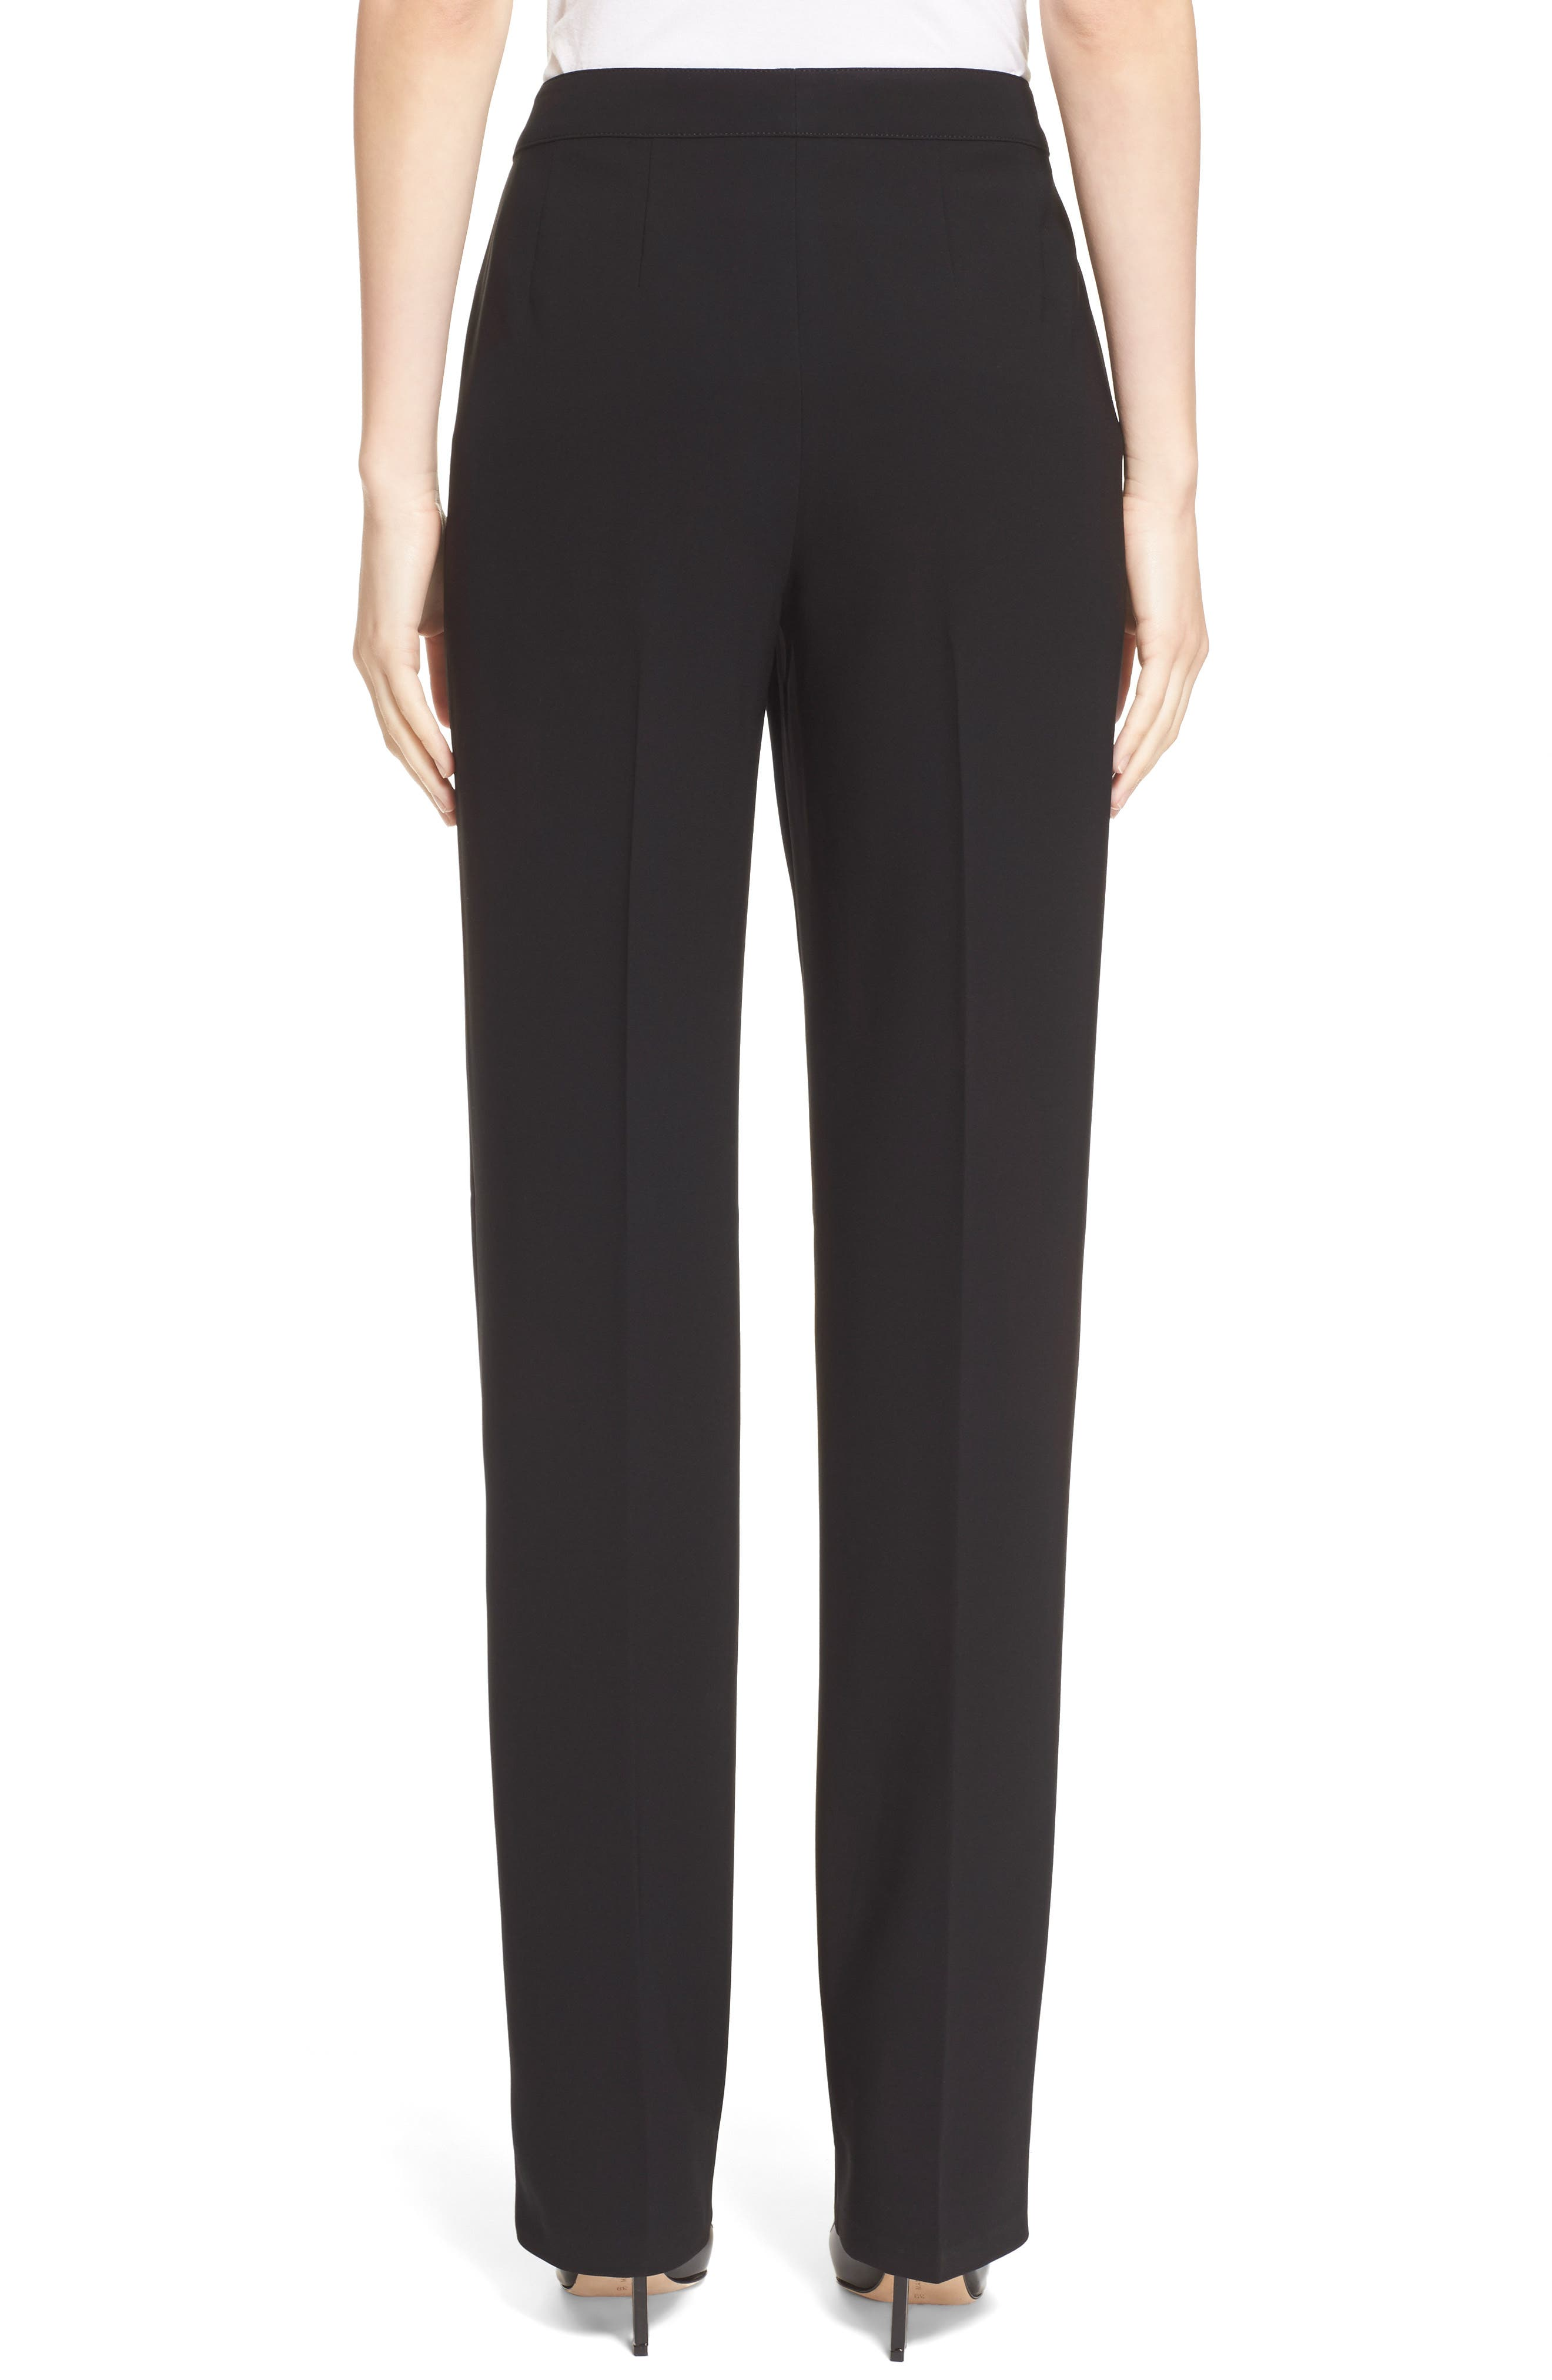 ST. JOHN COLLECTION, Diana Straight Leg Crepe Marocain Pants, Alternate thumbnail 4, color, CAVIAR